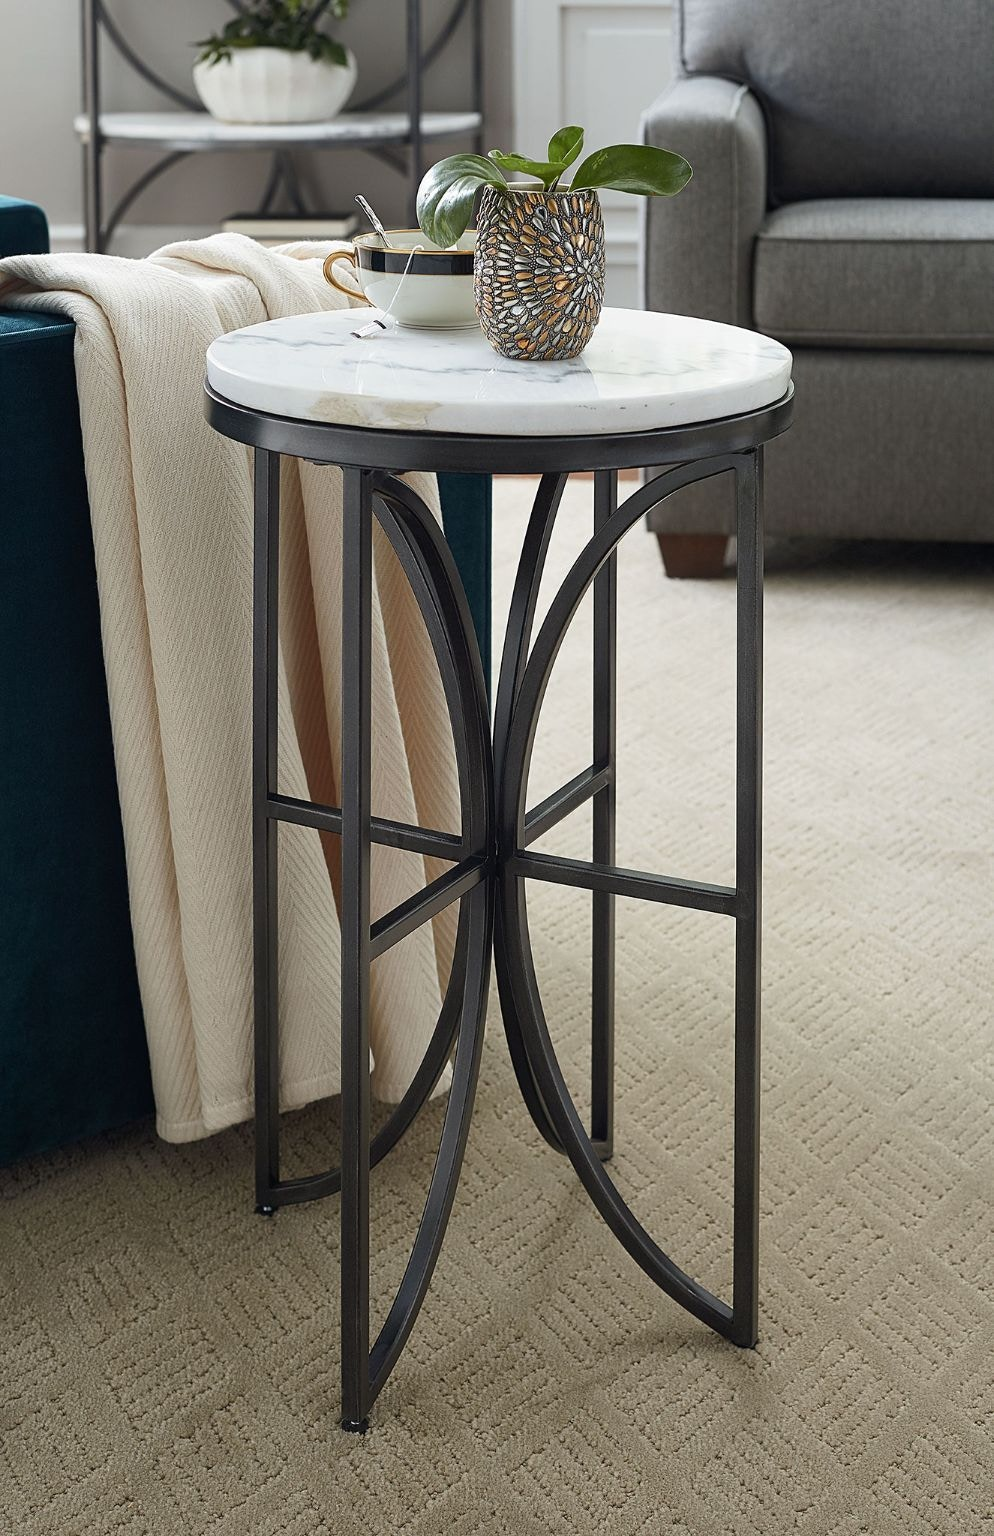 Hammary Living Room Small Round Accent Table 576-917